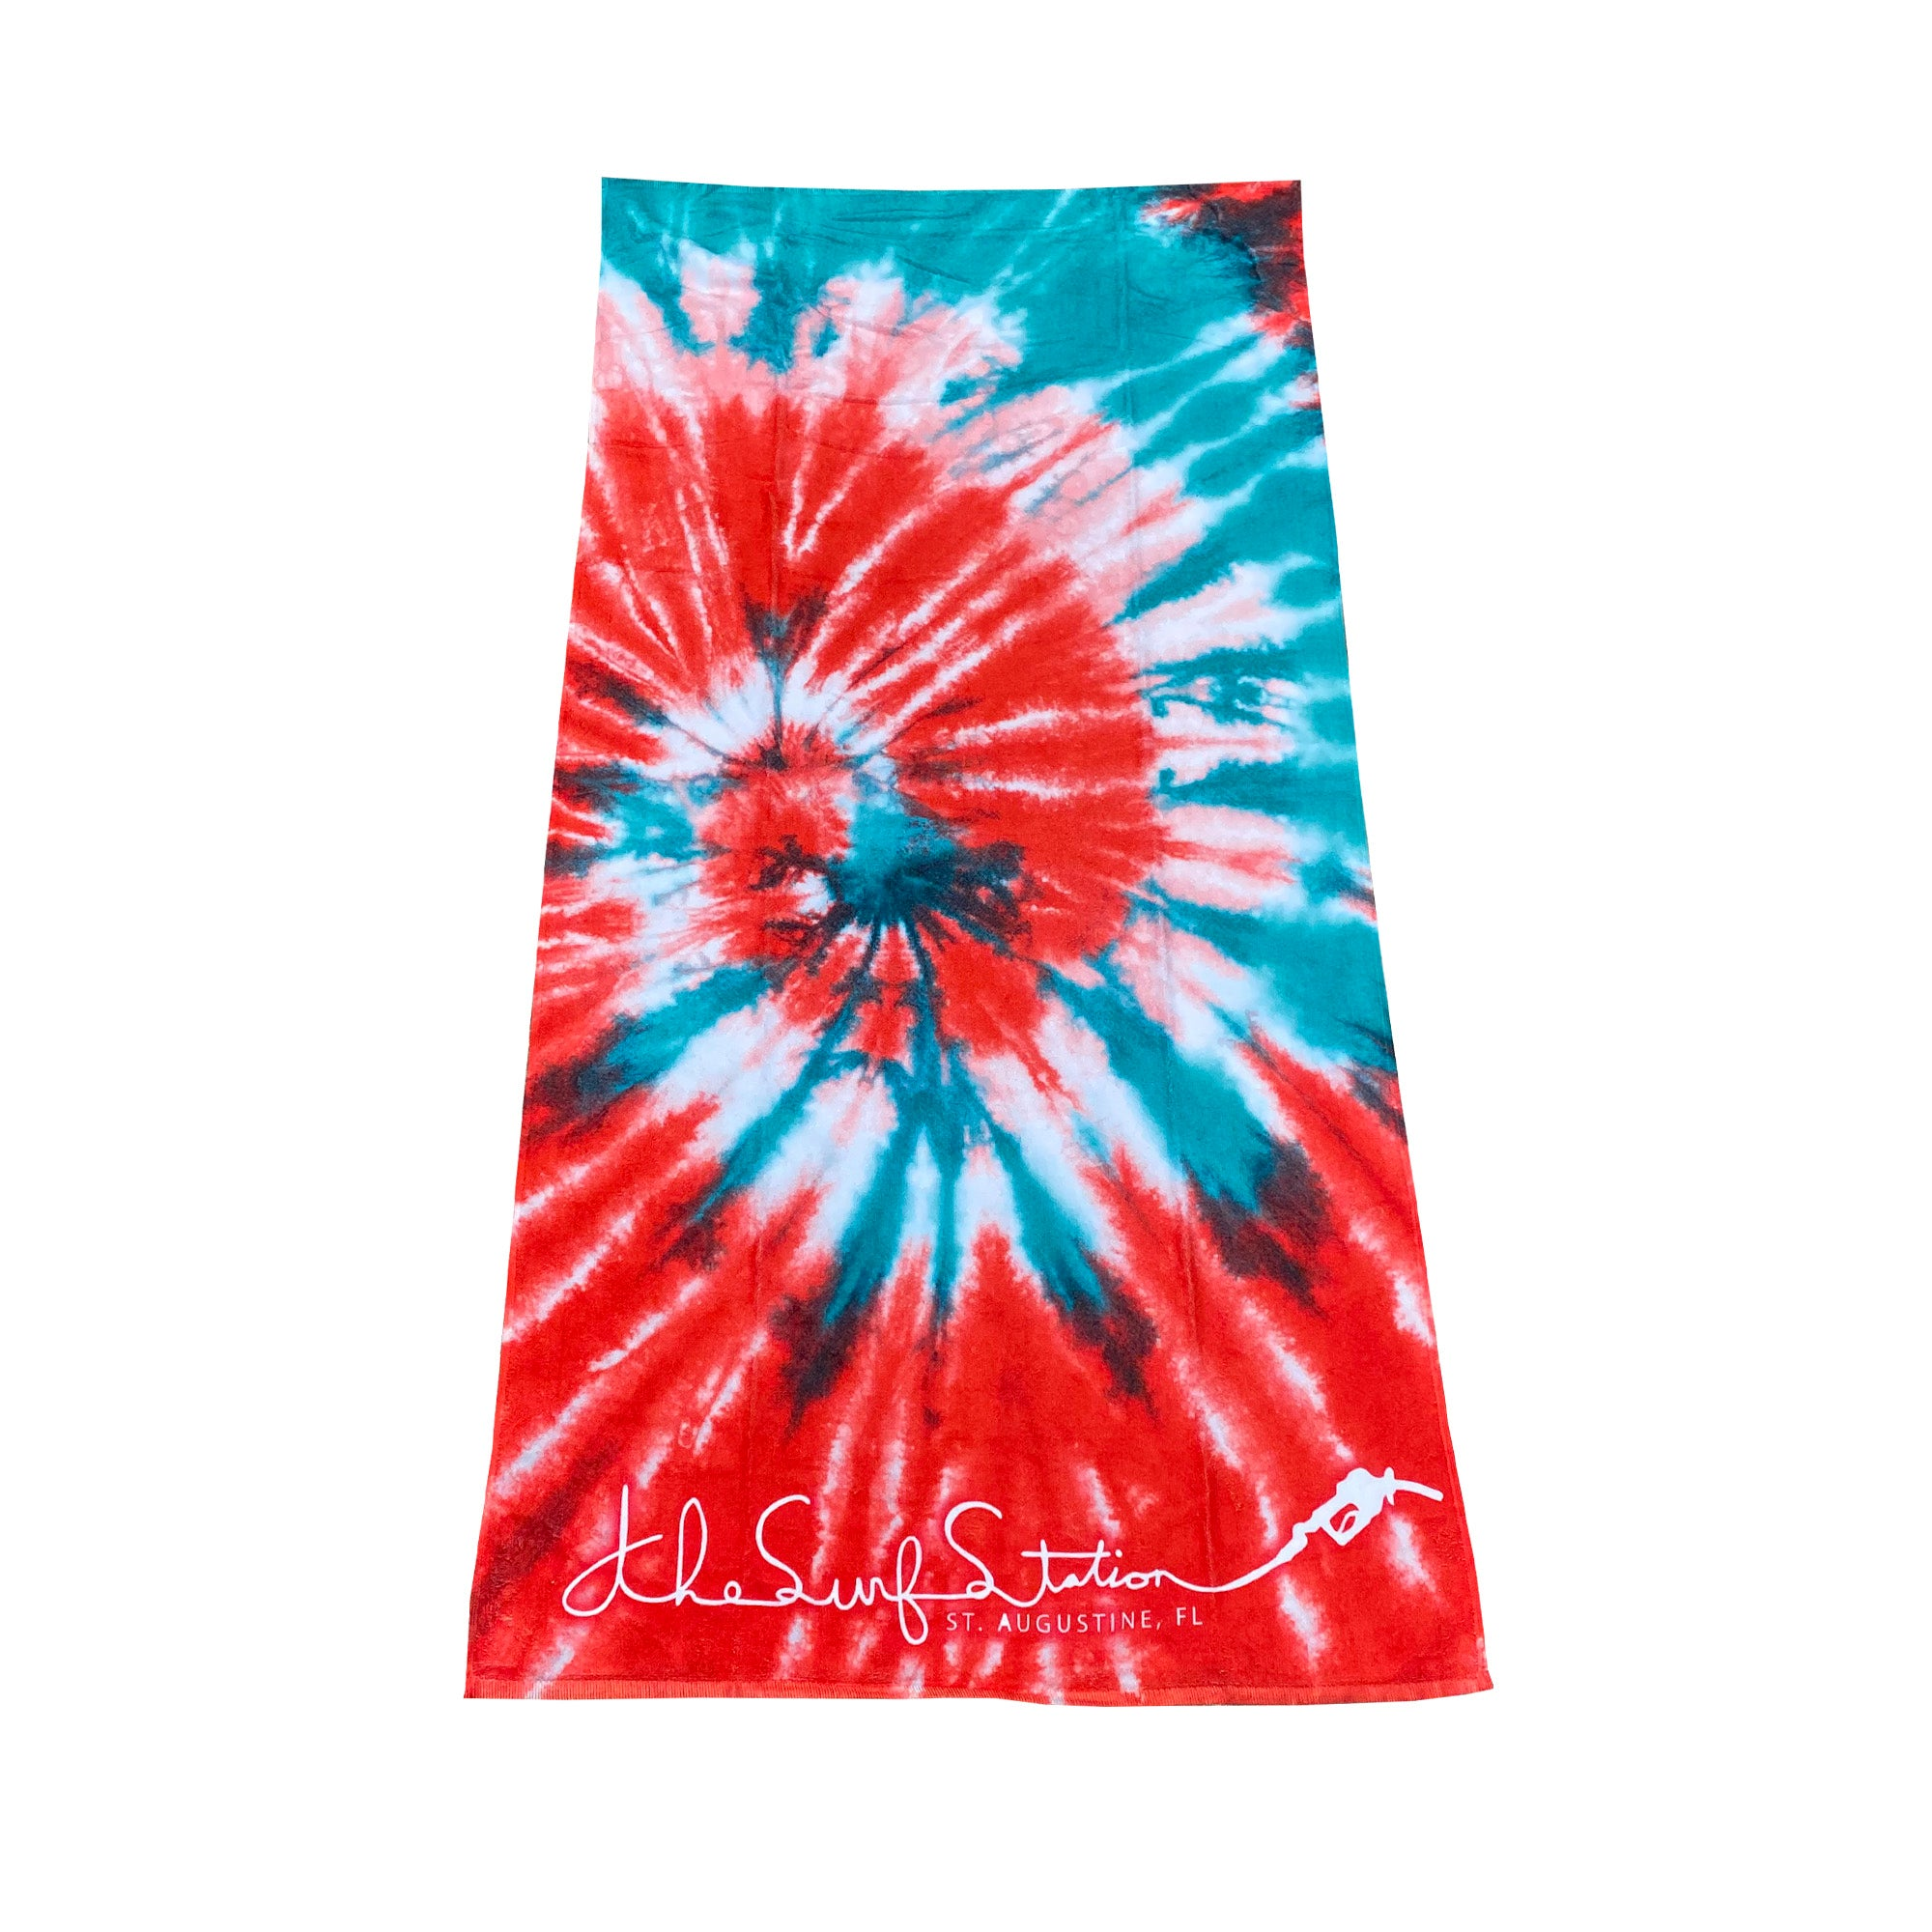 Surf Station Slant Six Beach Towel - Red